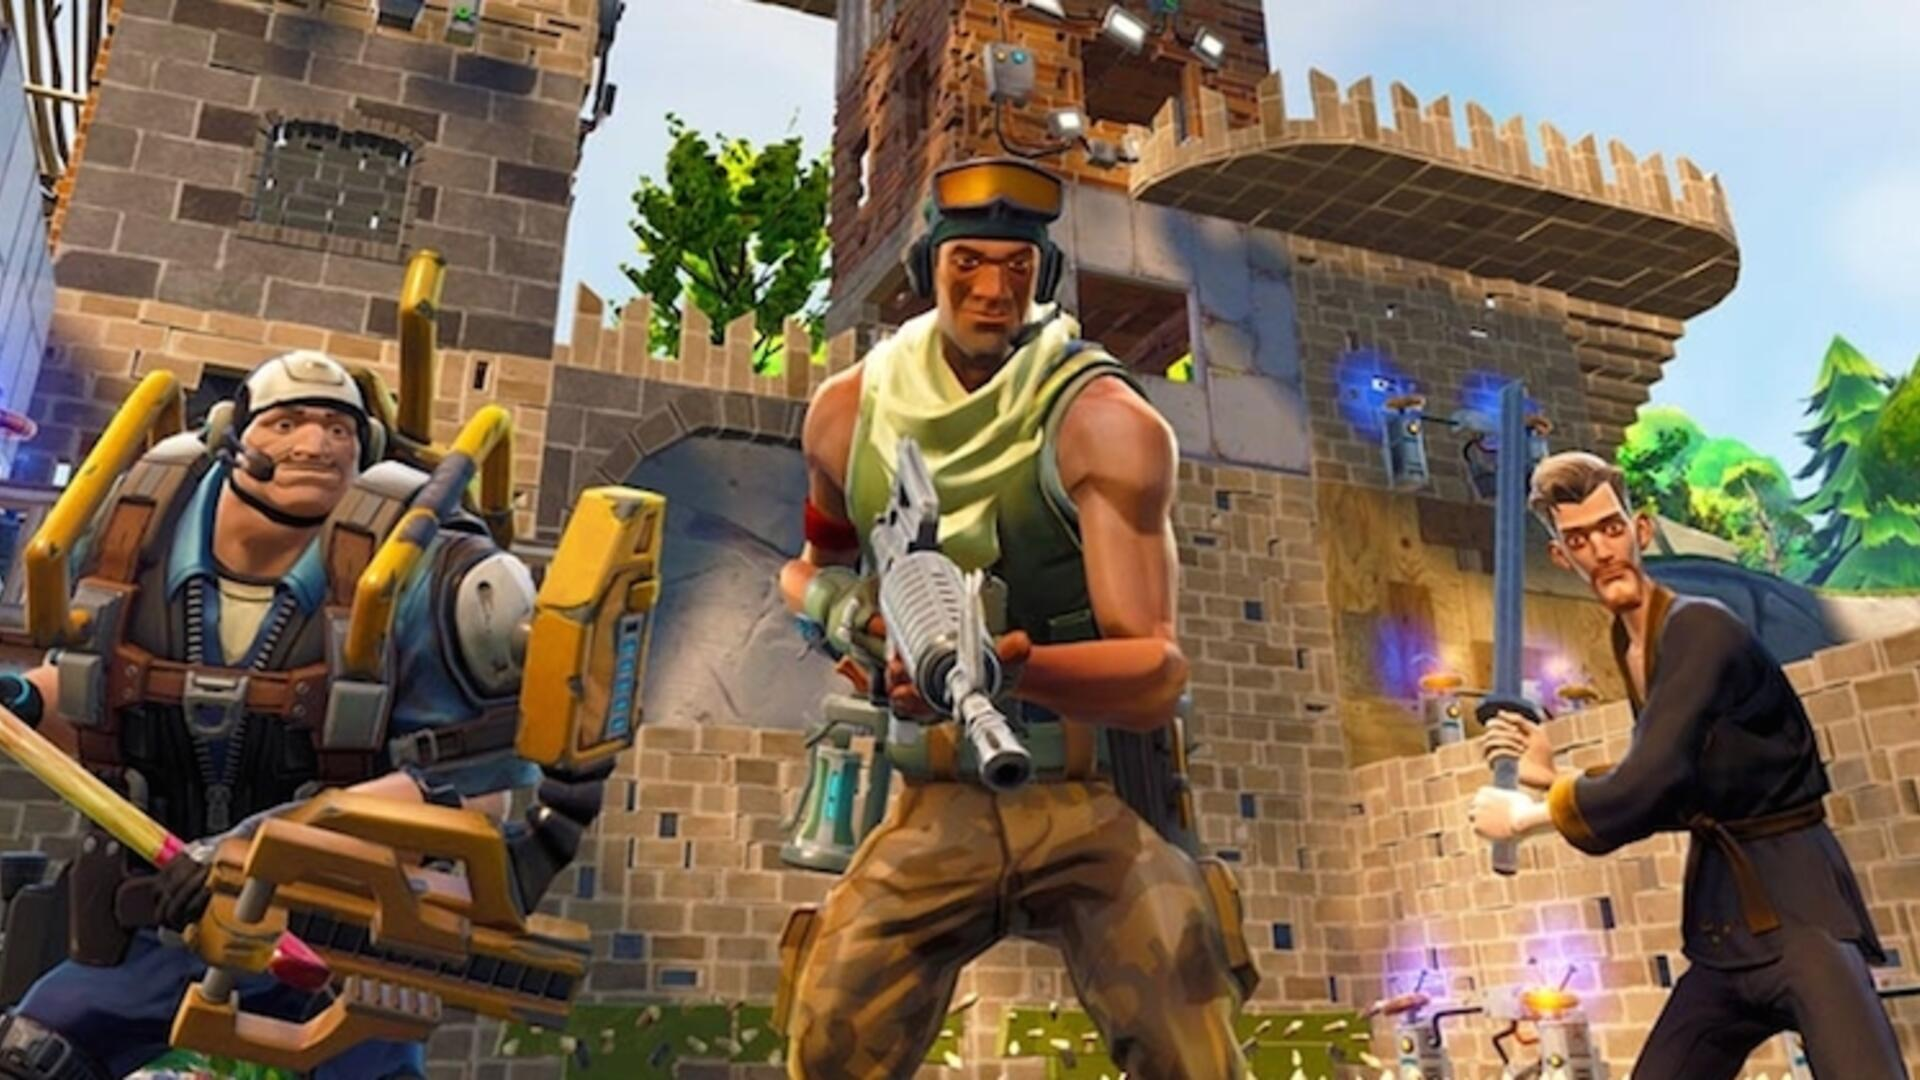 Over 1 Million People Watch Fortnite Live Stream on YouTube